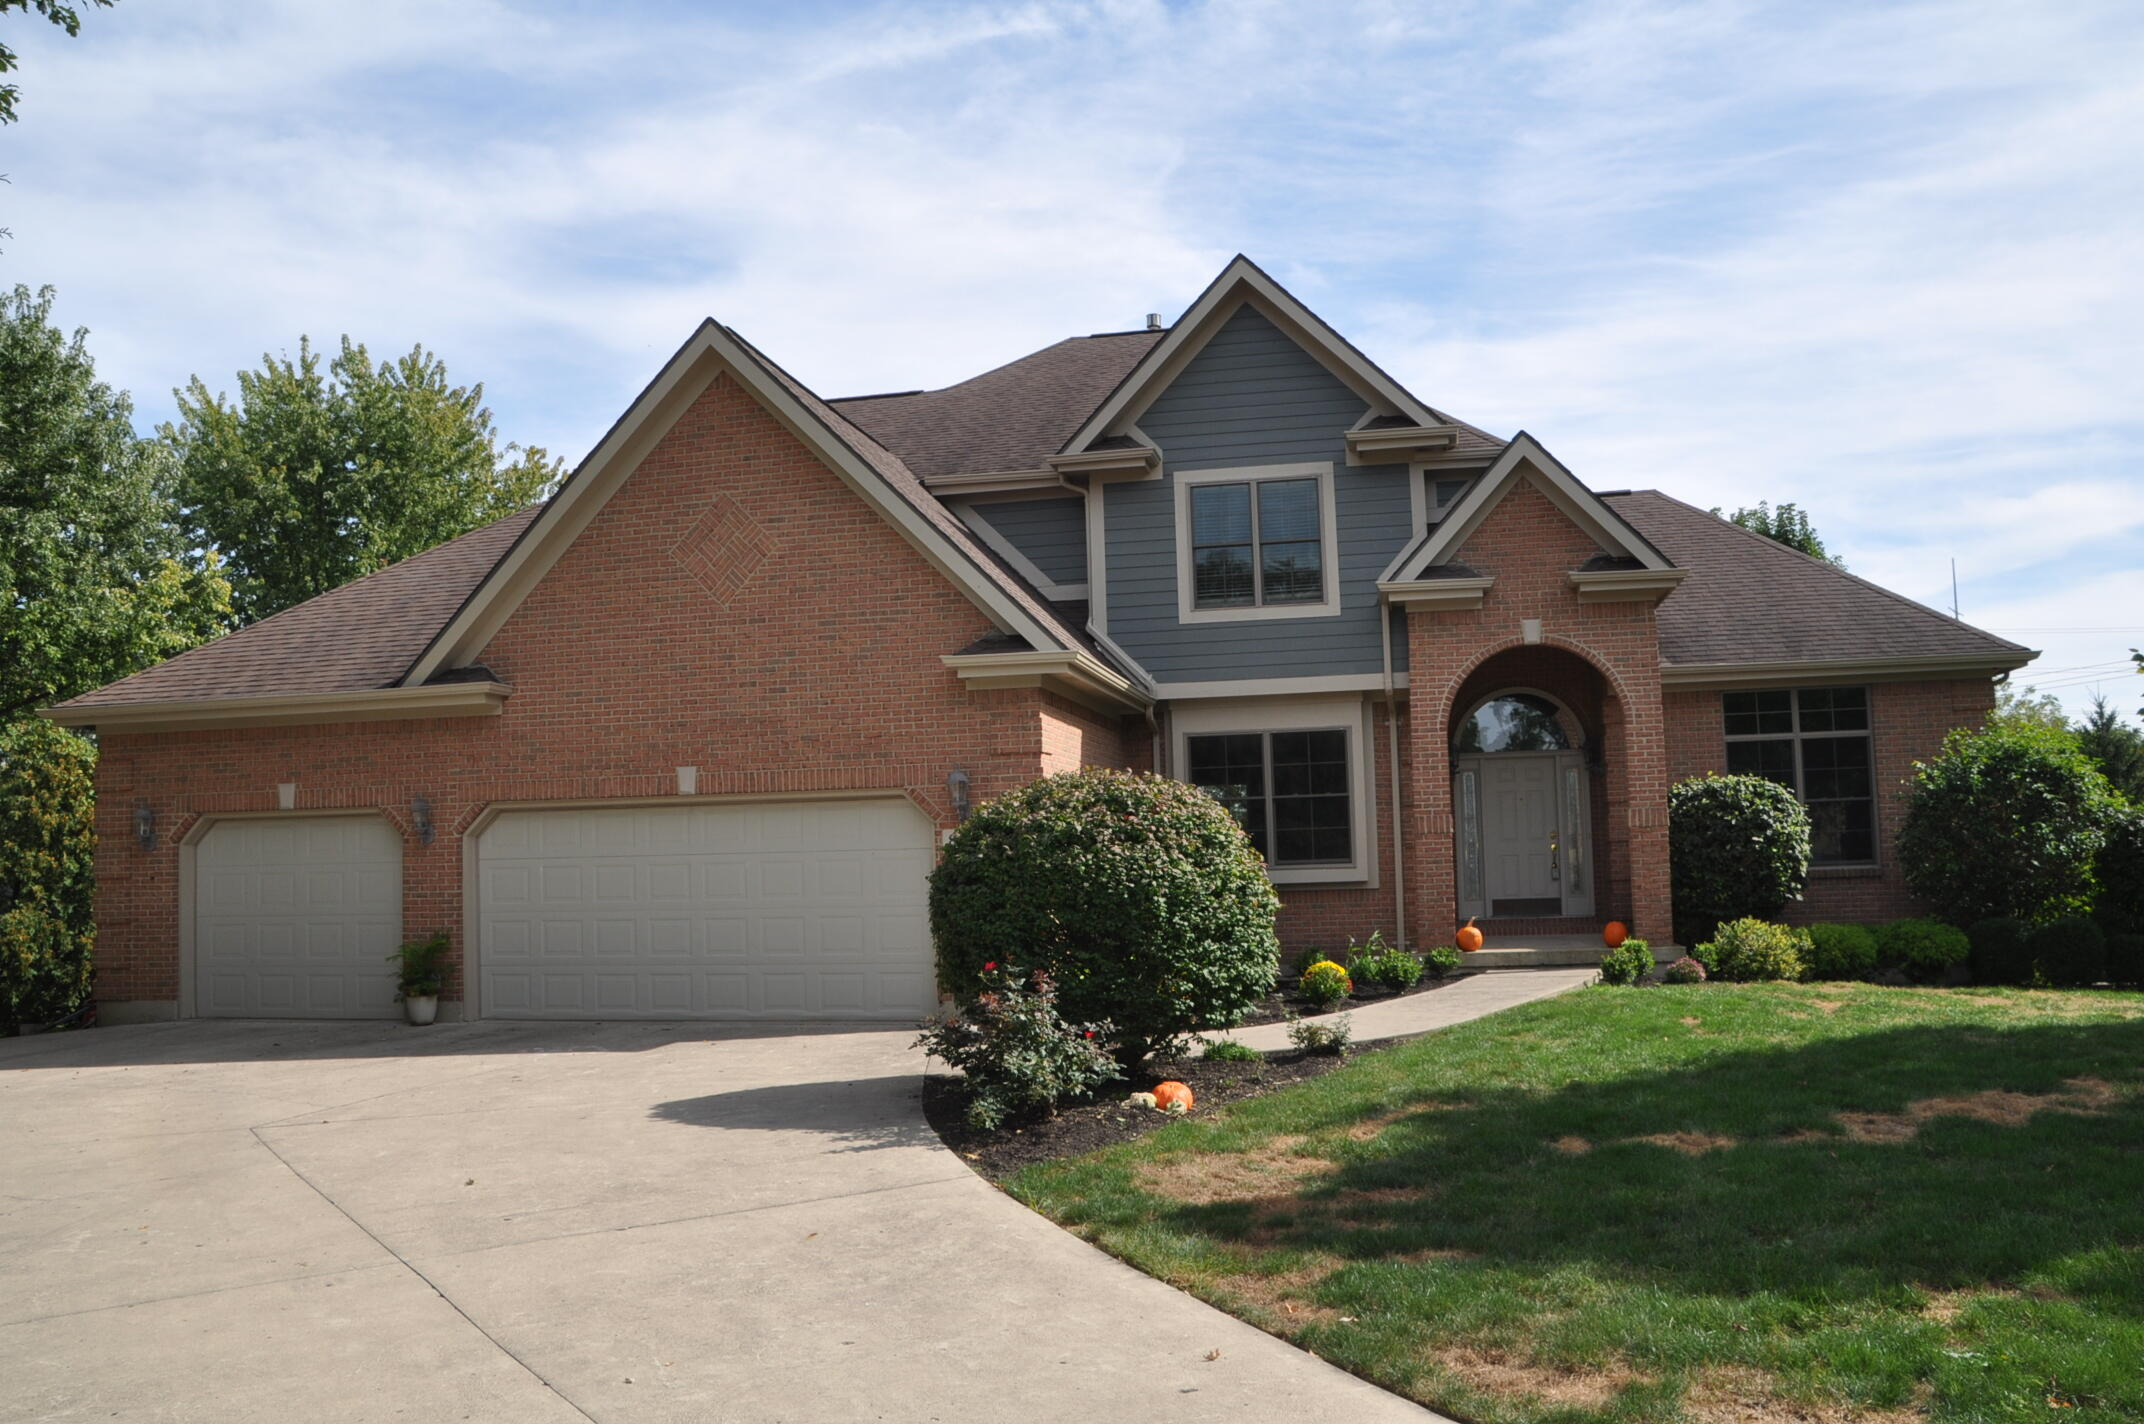 Photo 1 for 890 Hickory Hill Dr Tipp City, OH 45371